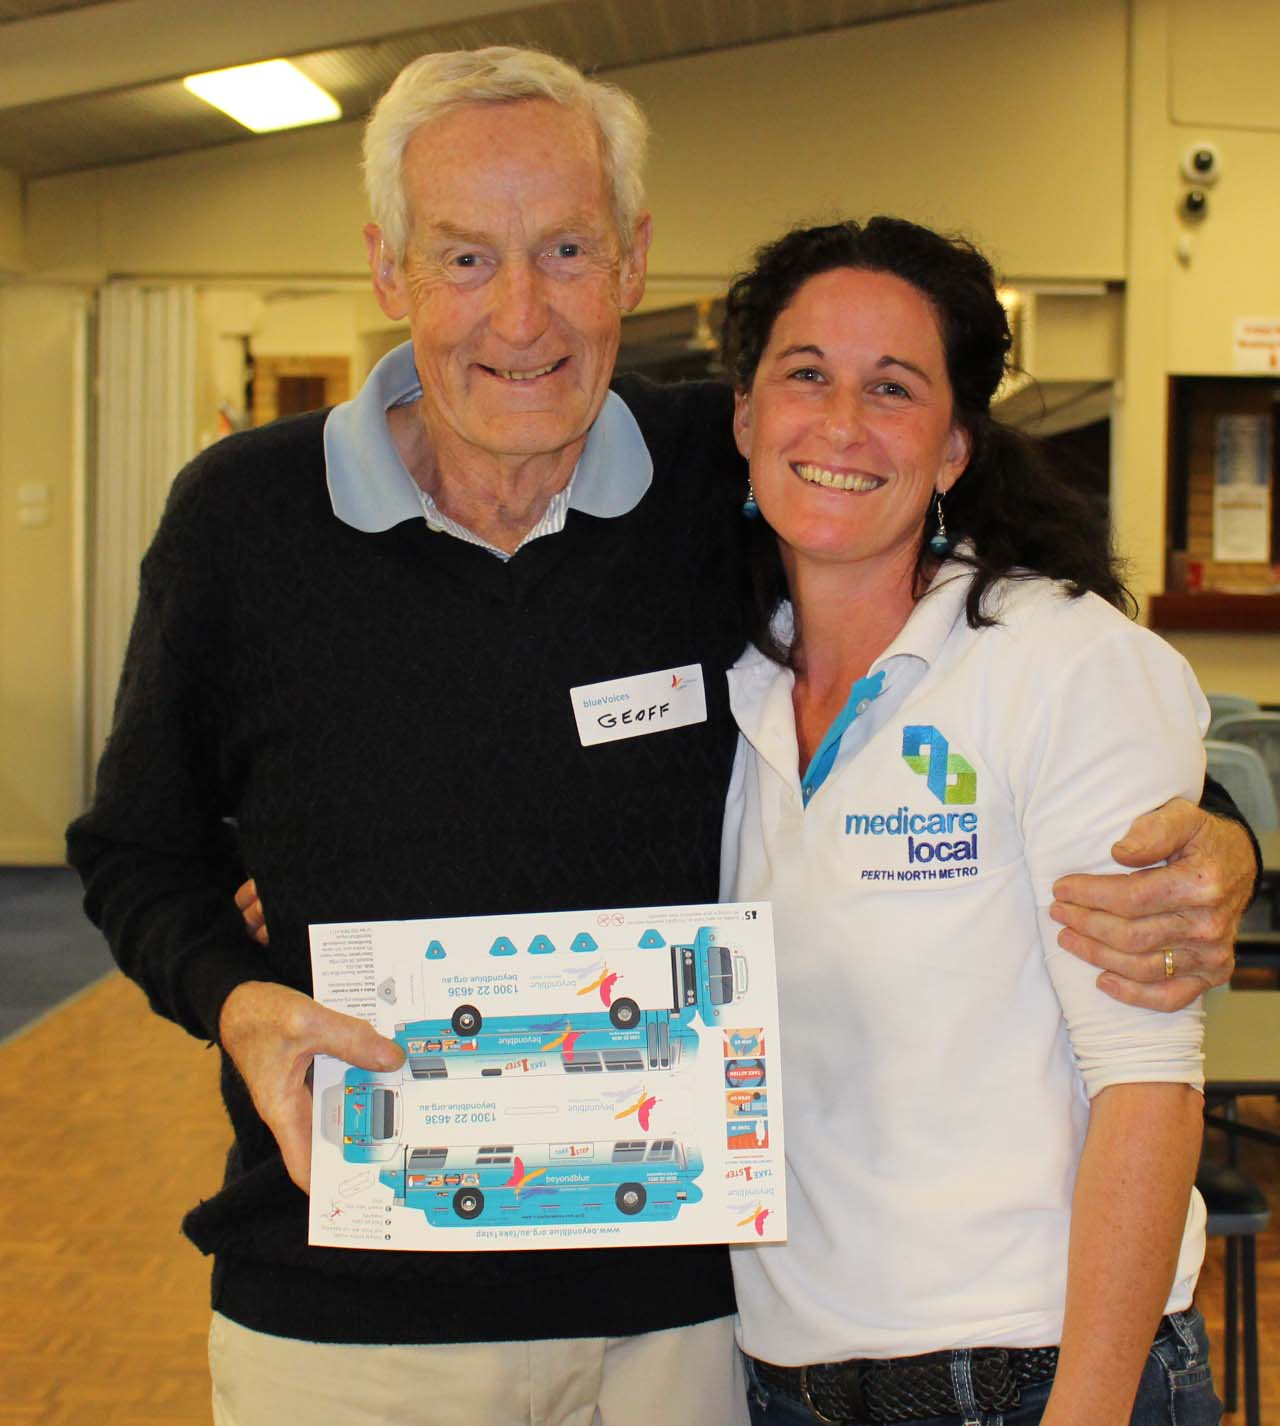 blueVoices Member Geoff with Katie from PNML at the Sorrento Bowling Club in Duncraig.